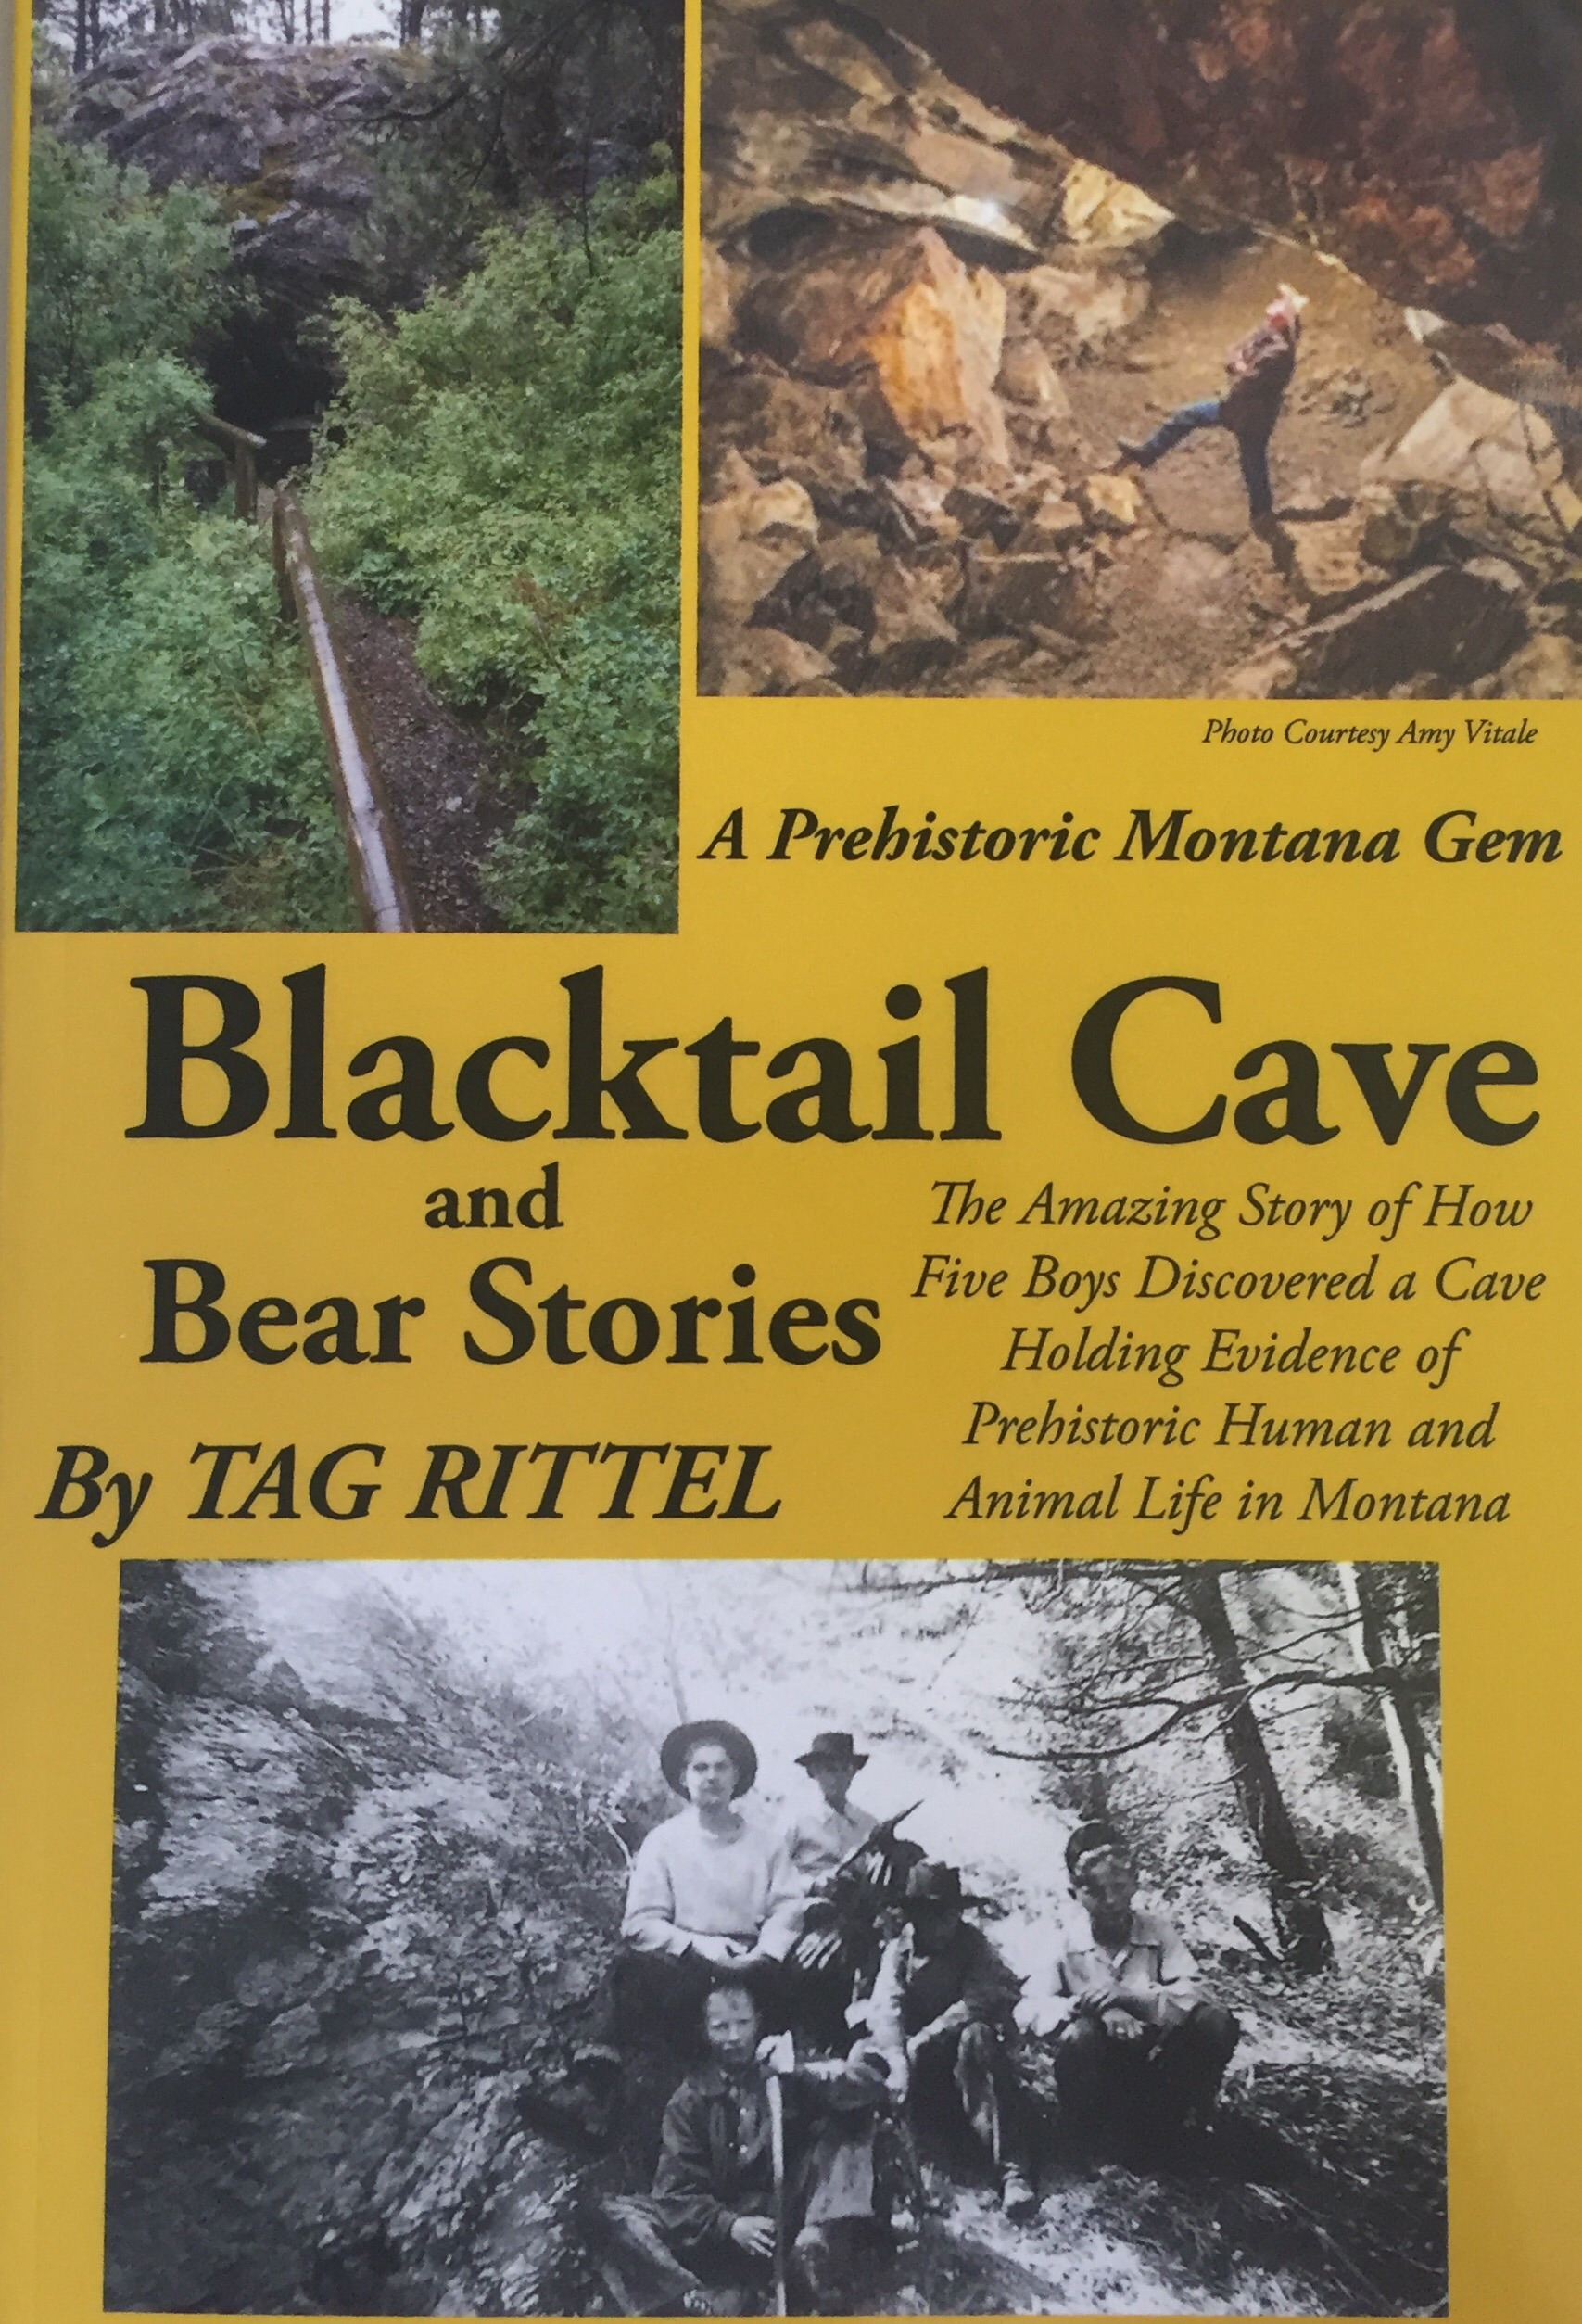 Blacktail Cave and Bear Stories